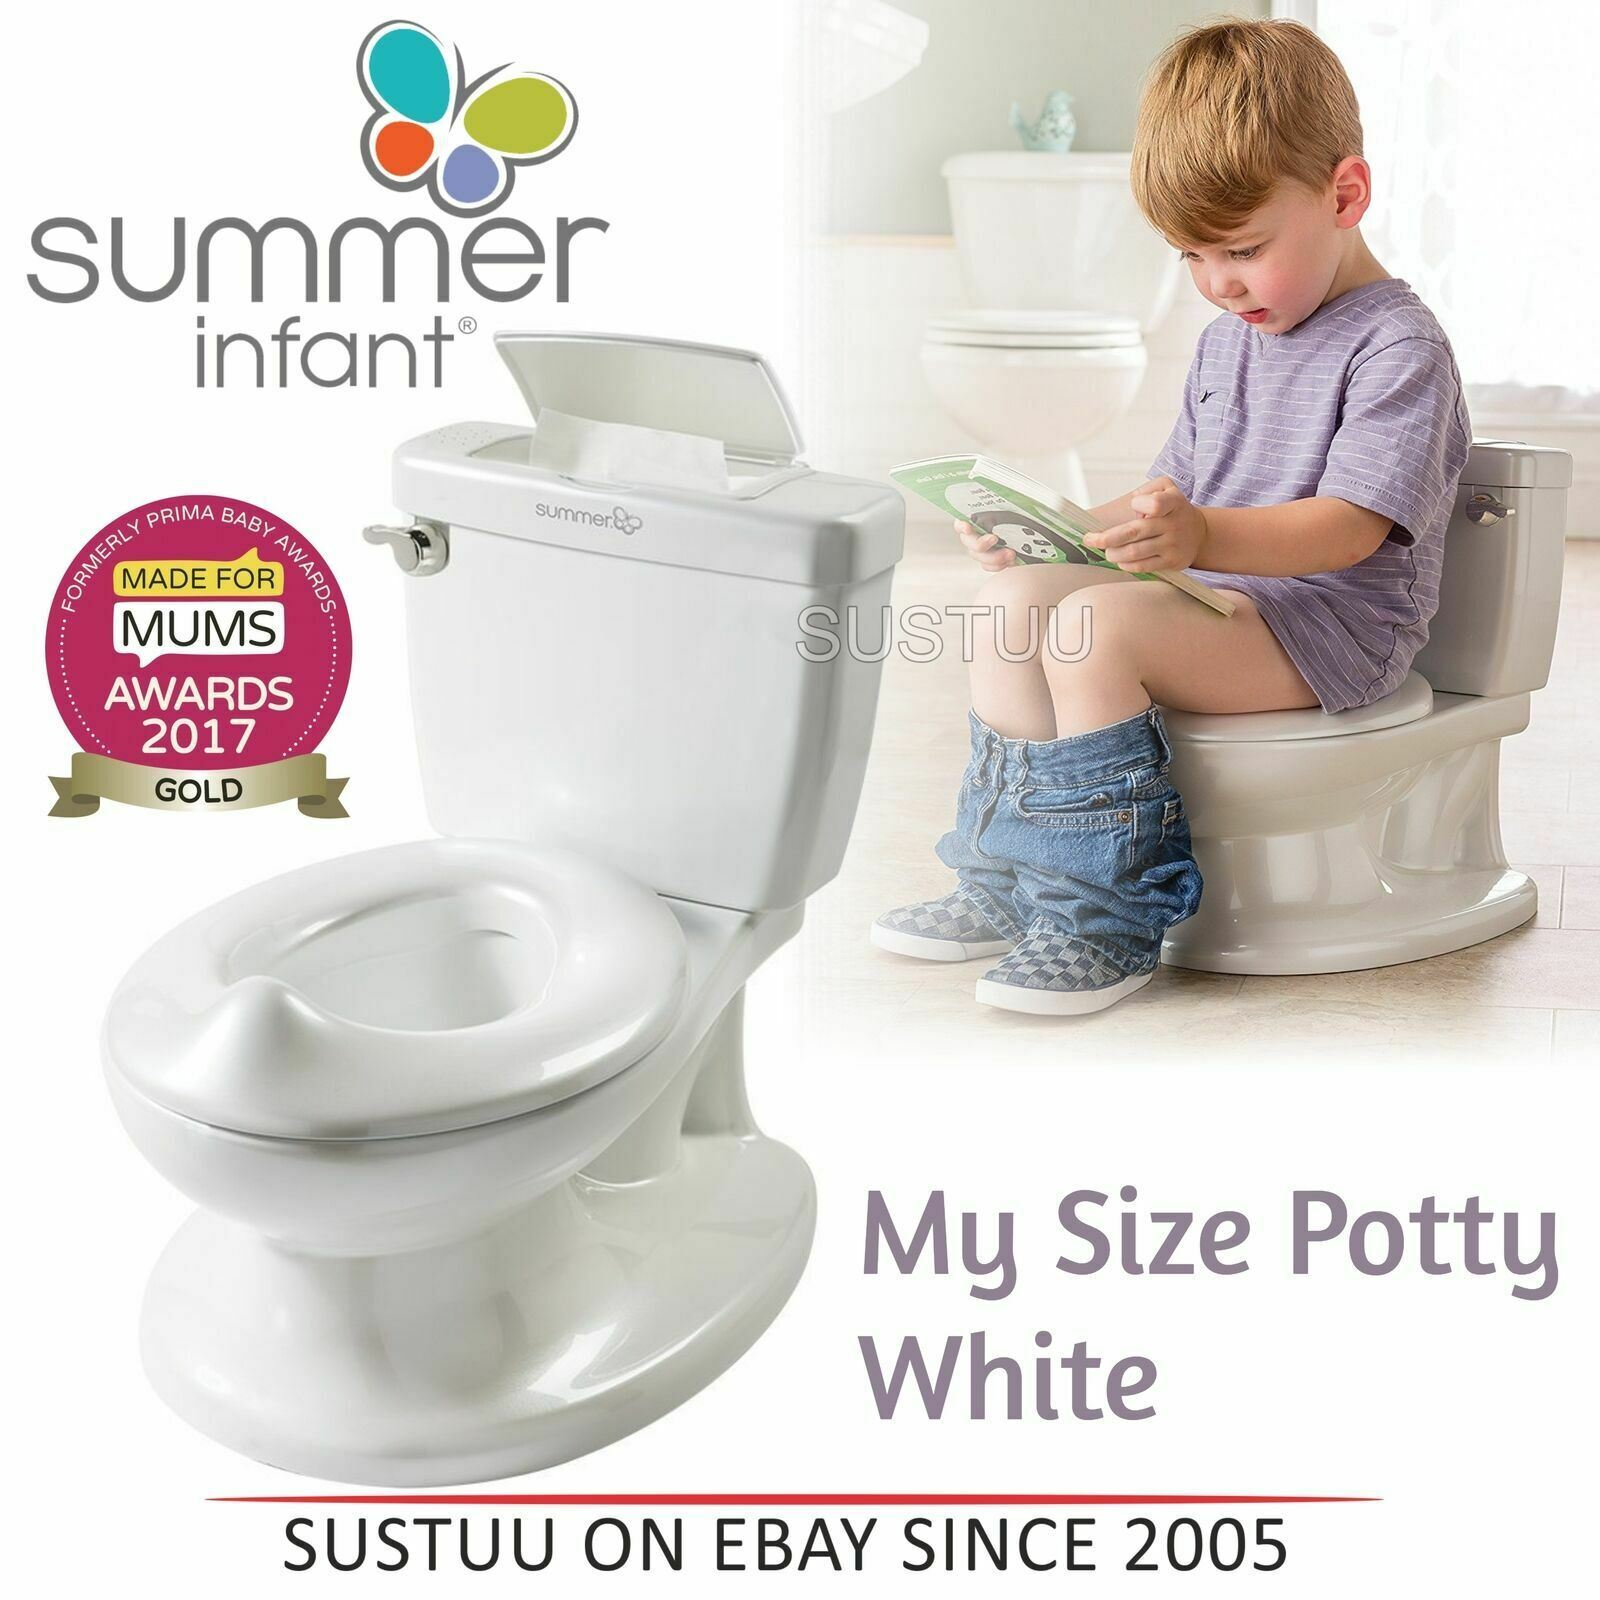 Toilet For Kids Infant Size Potty Removable Bowl Wipe Compartment Flip Up Seat